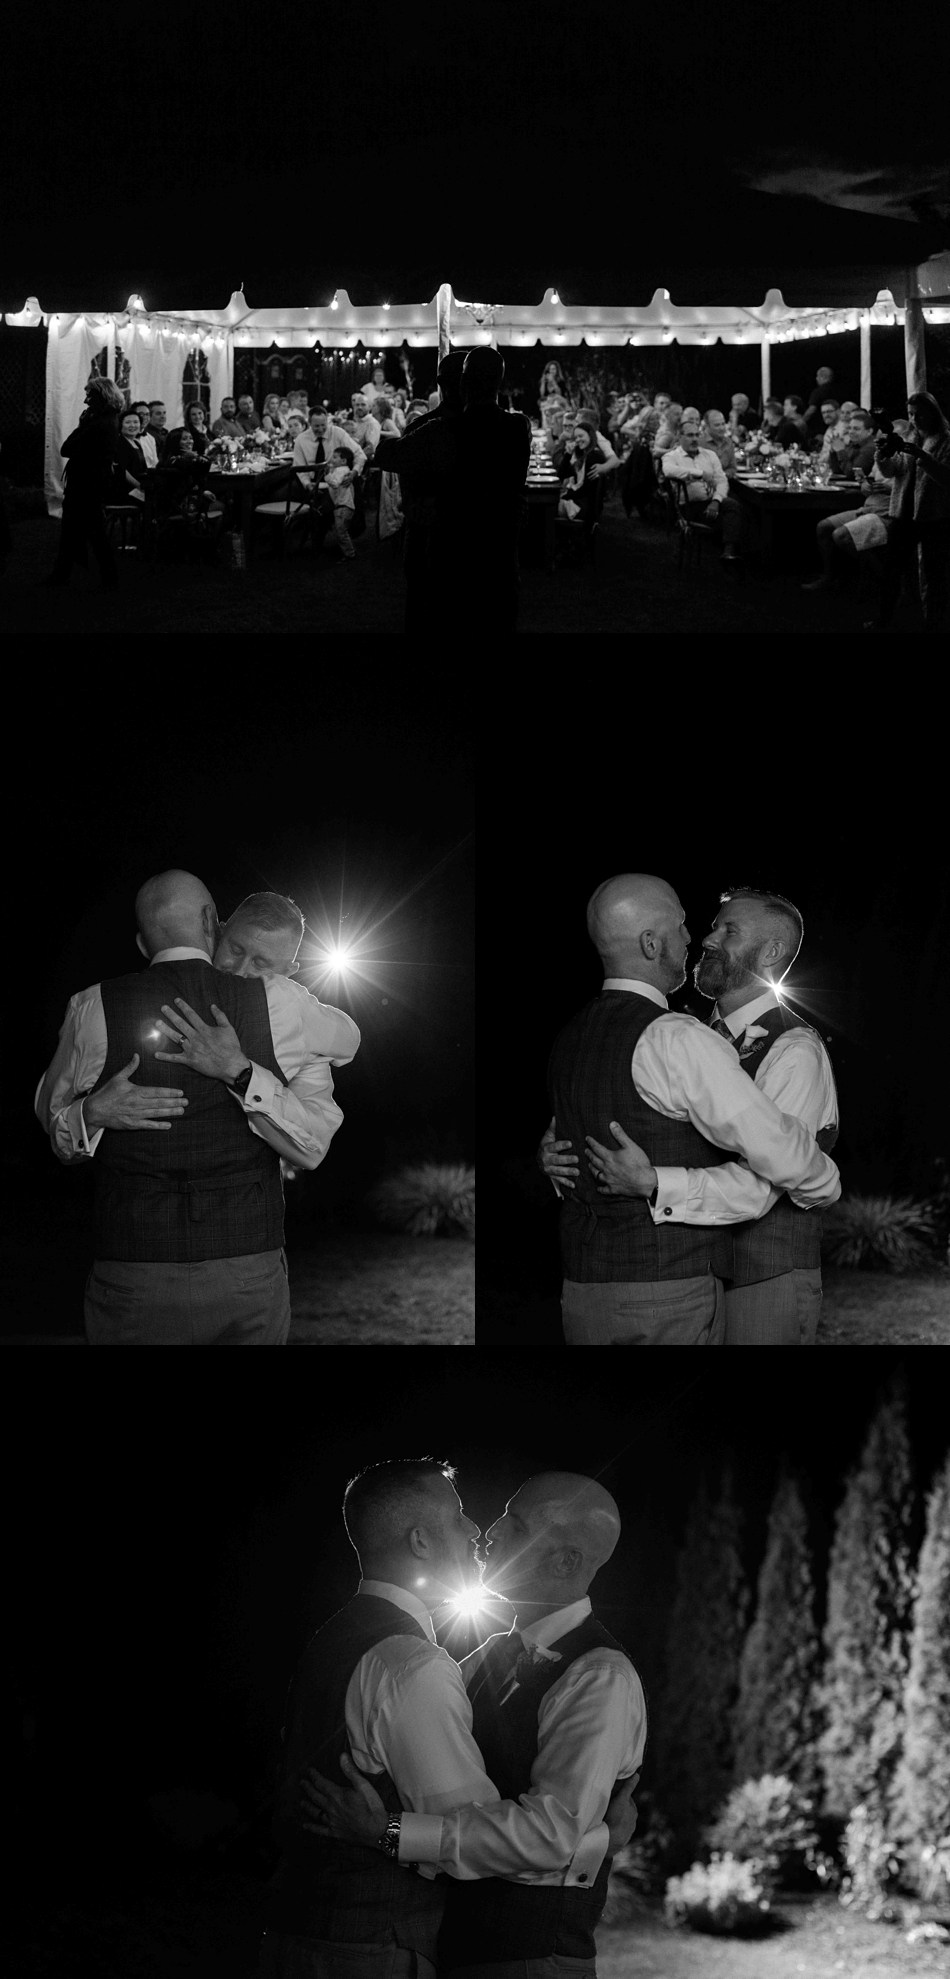 Dancing in the moonlight at Falling Water Gardens in Monroe. Photographs by Joanna Monger Photography, Snohomish's Best Wedding Photographer.